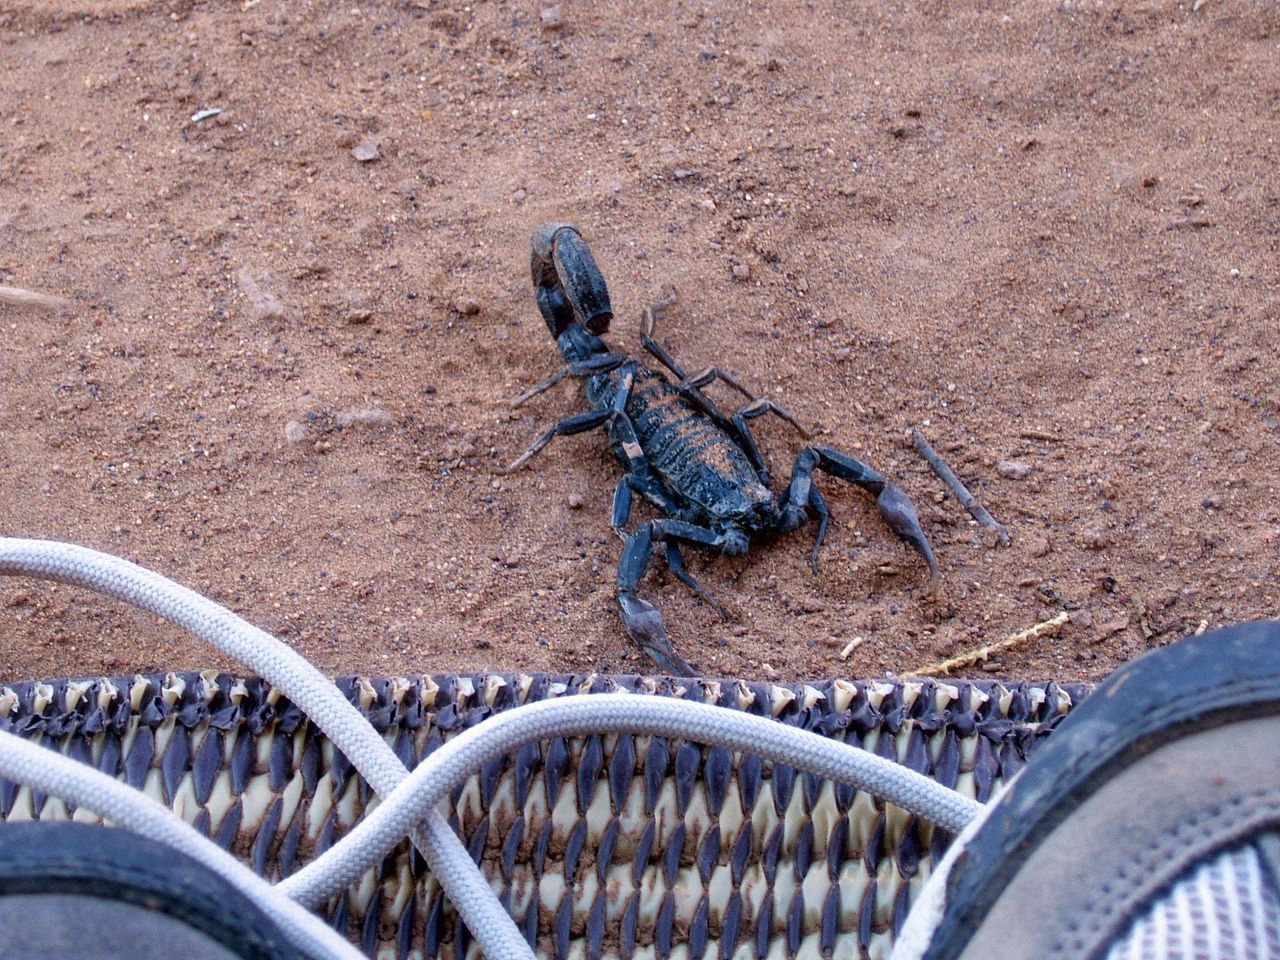 Animal Themes De Hiking Shoes In Point Of View Poison Scorpion Scorpions Water